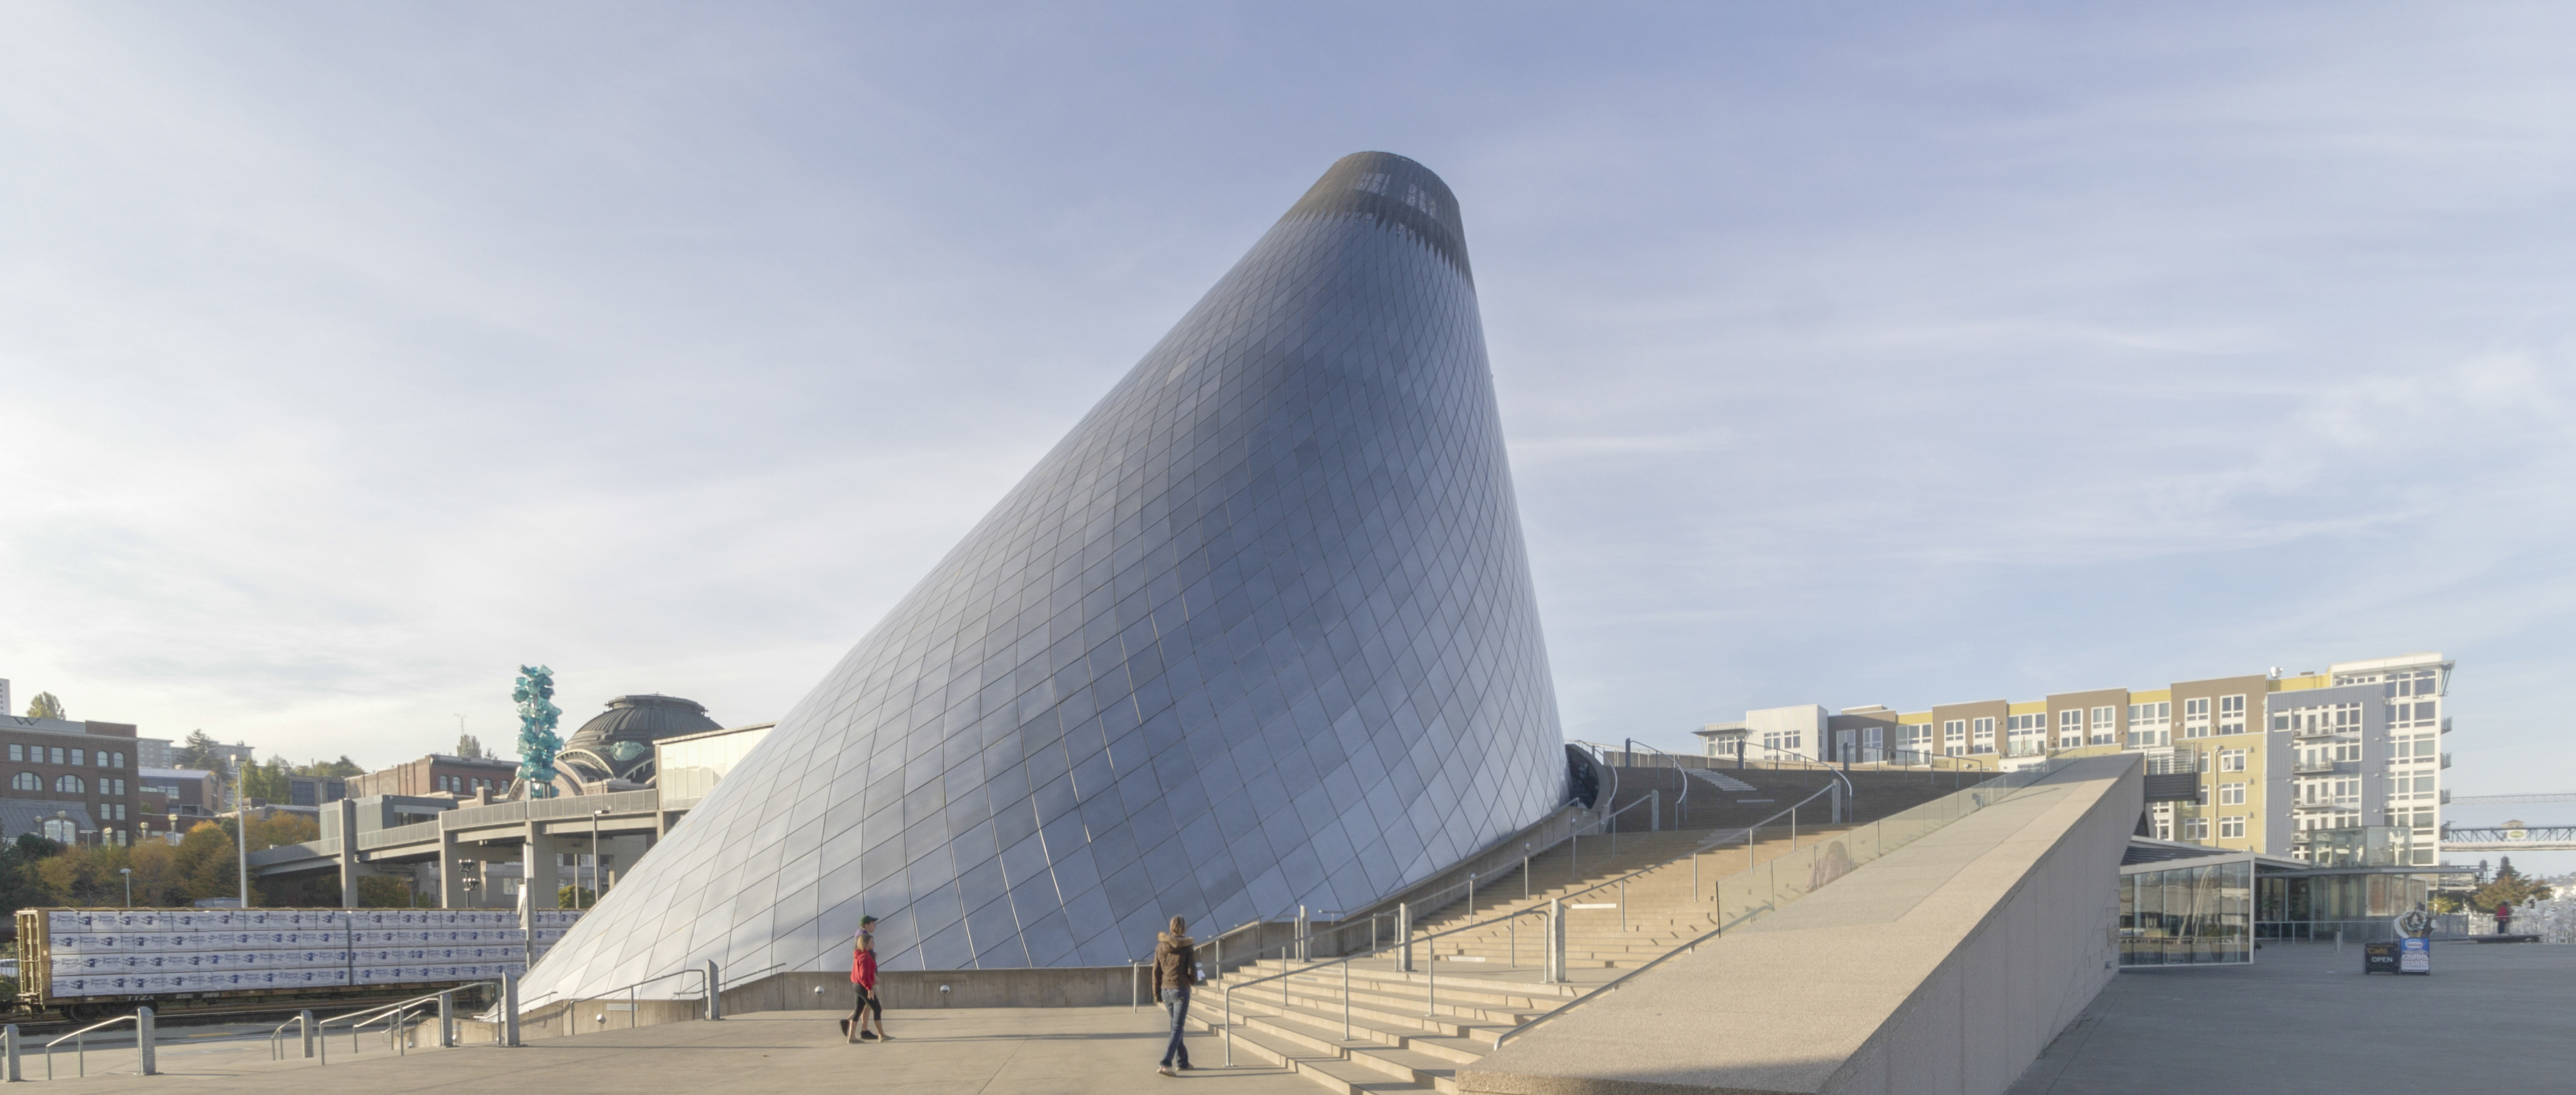 Tacoma Museum of Glass Cone